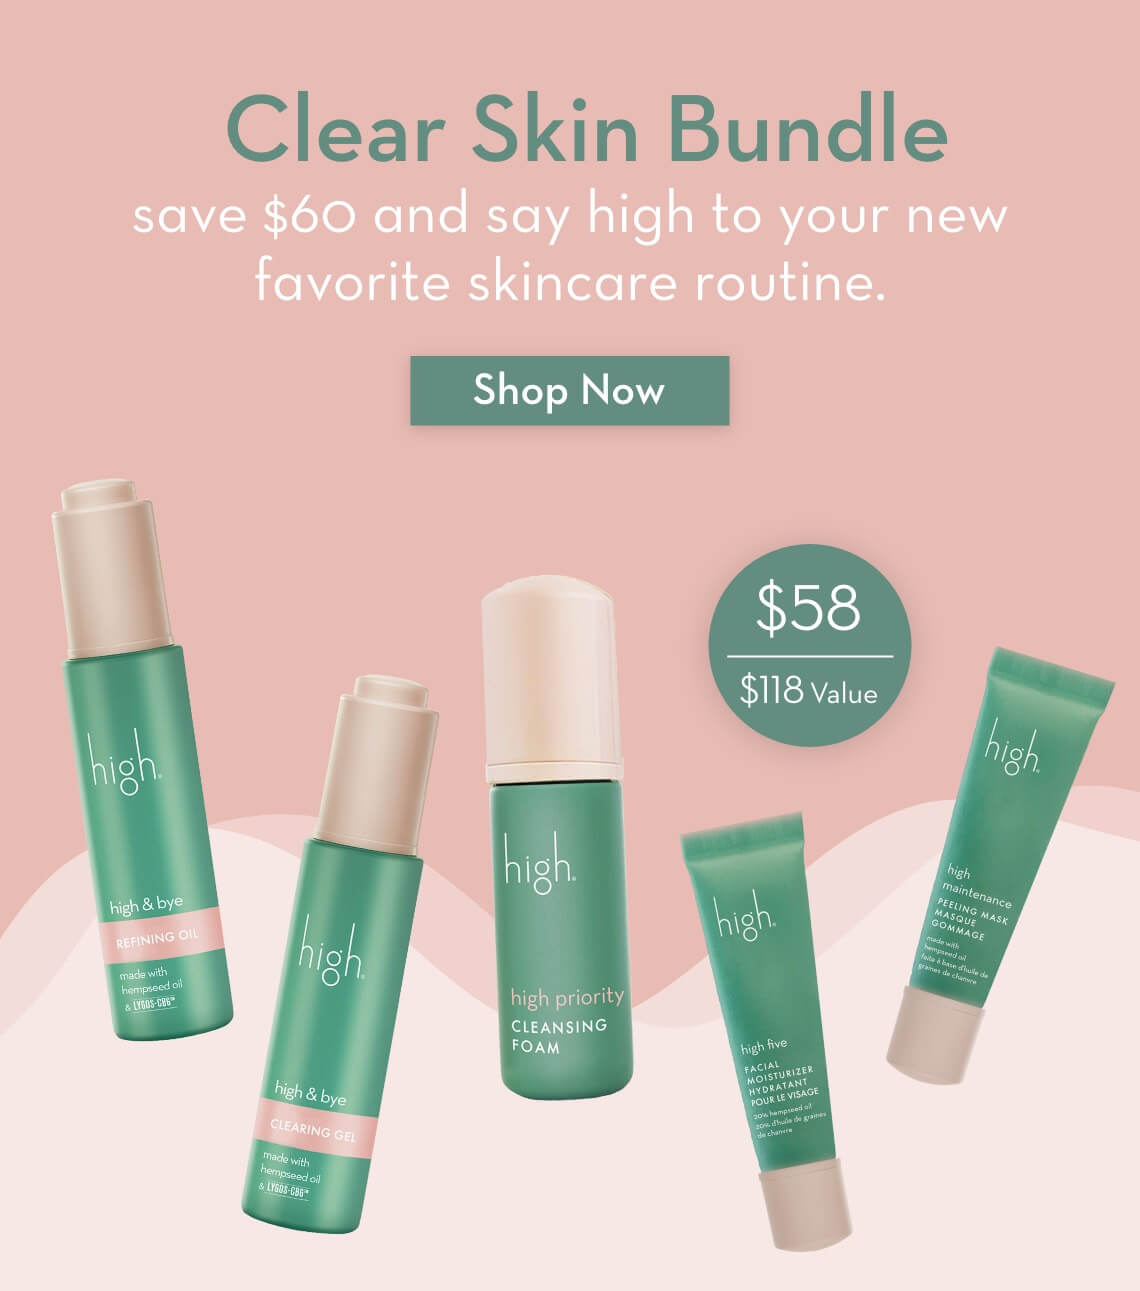 Save $60 on our Clear Skin Bundle